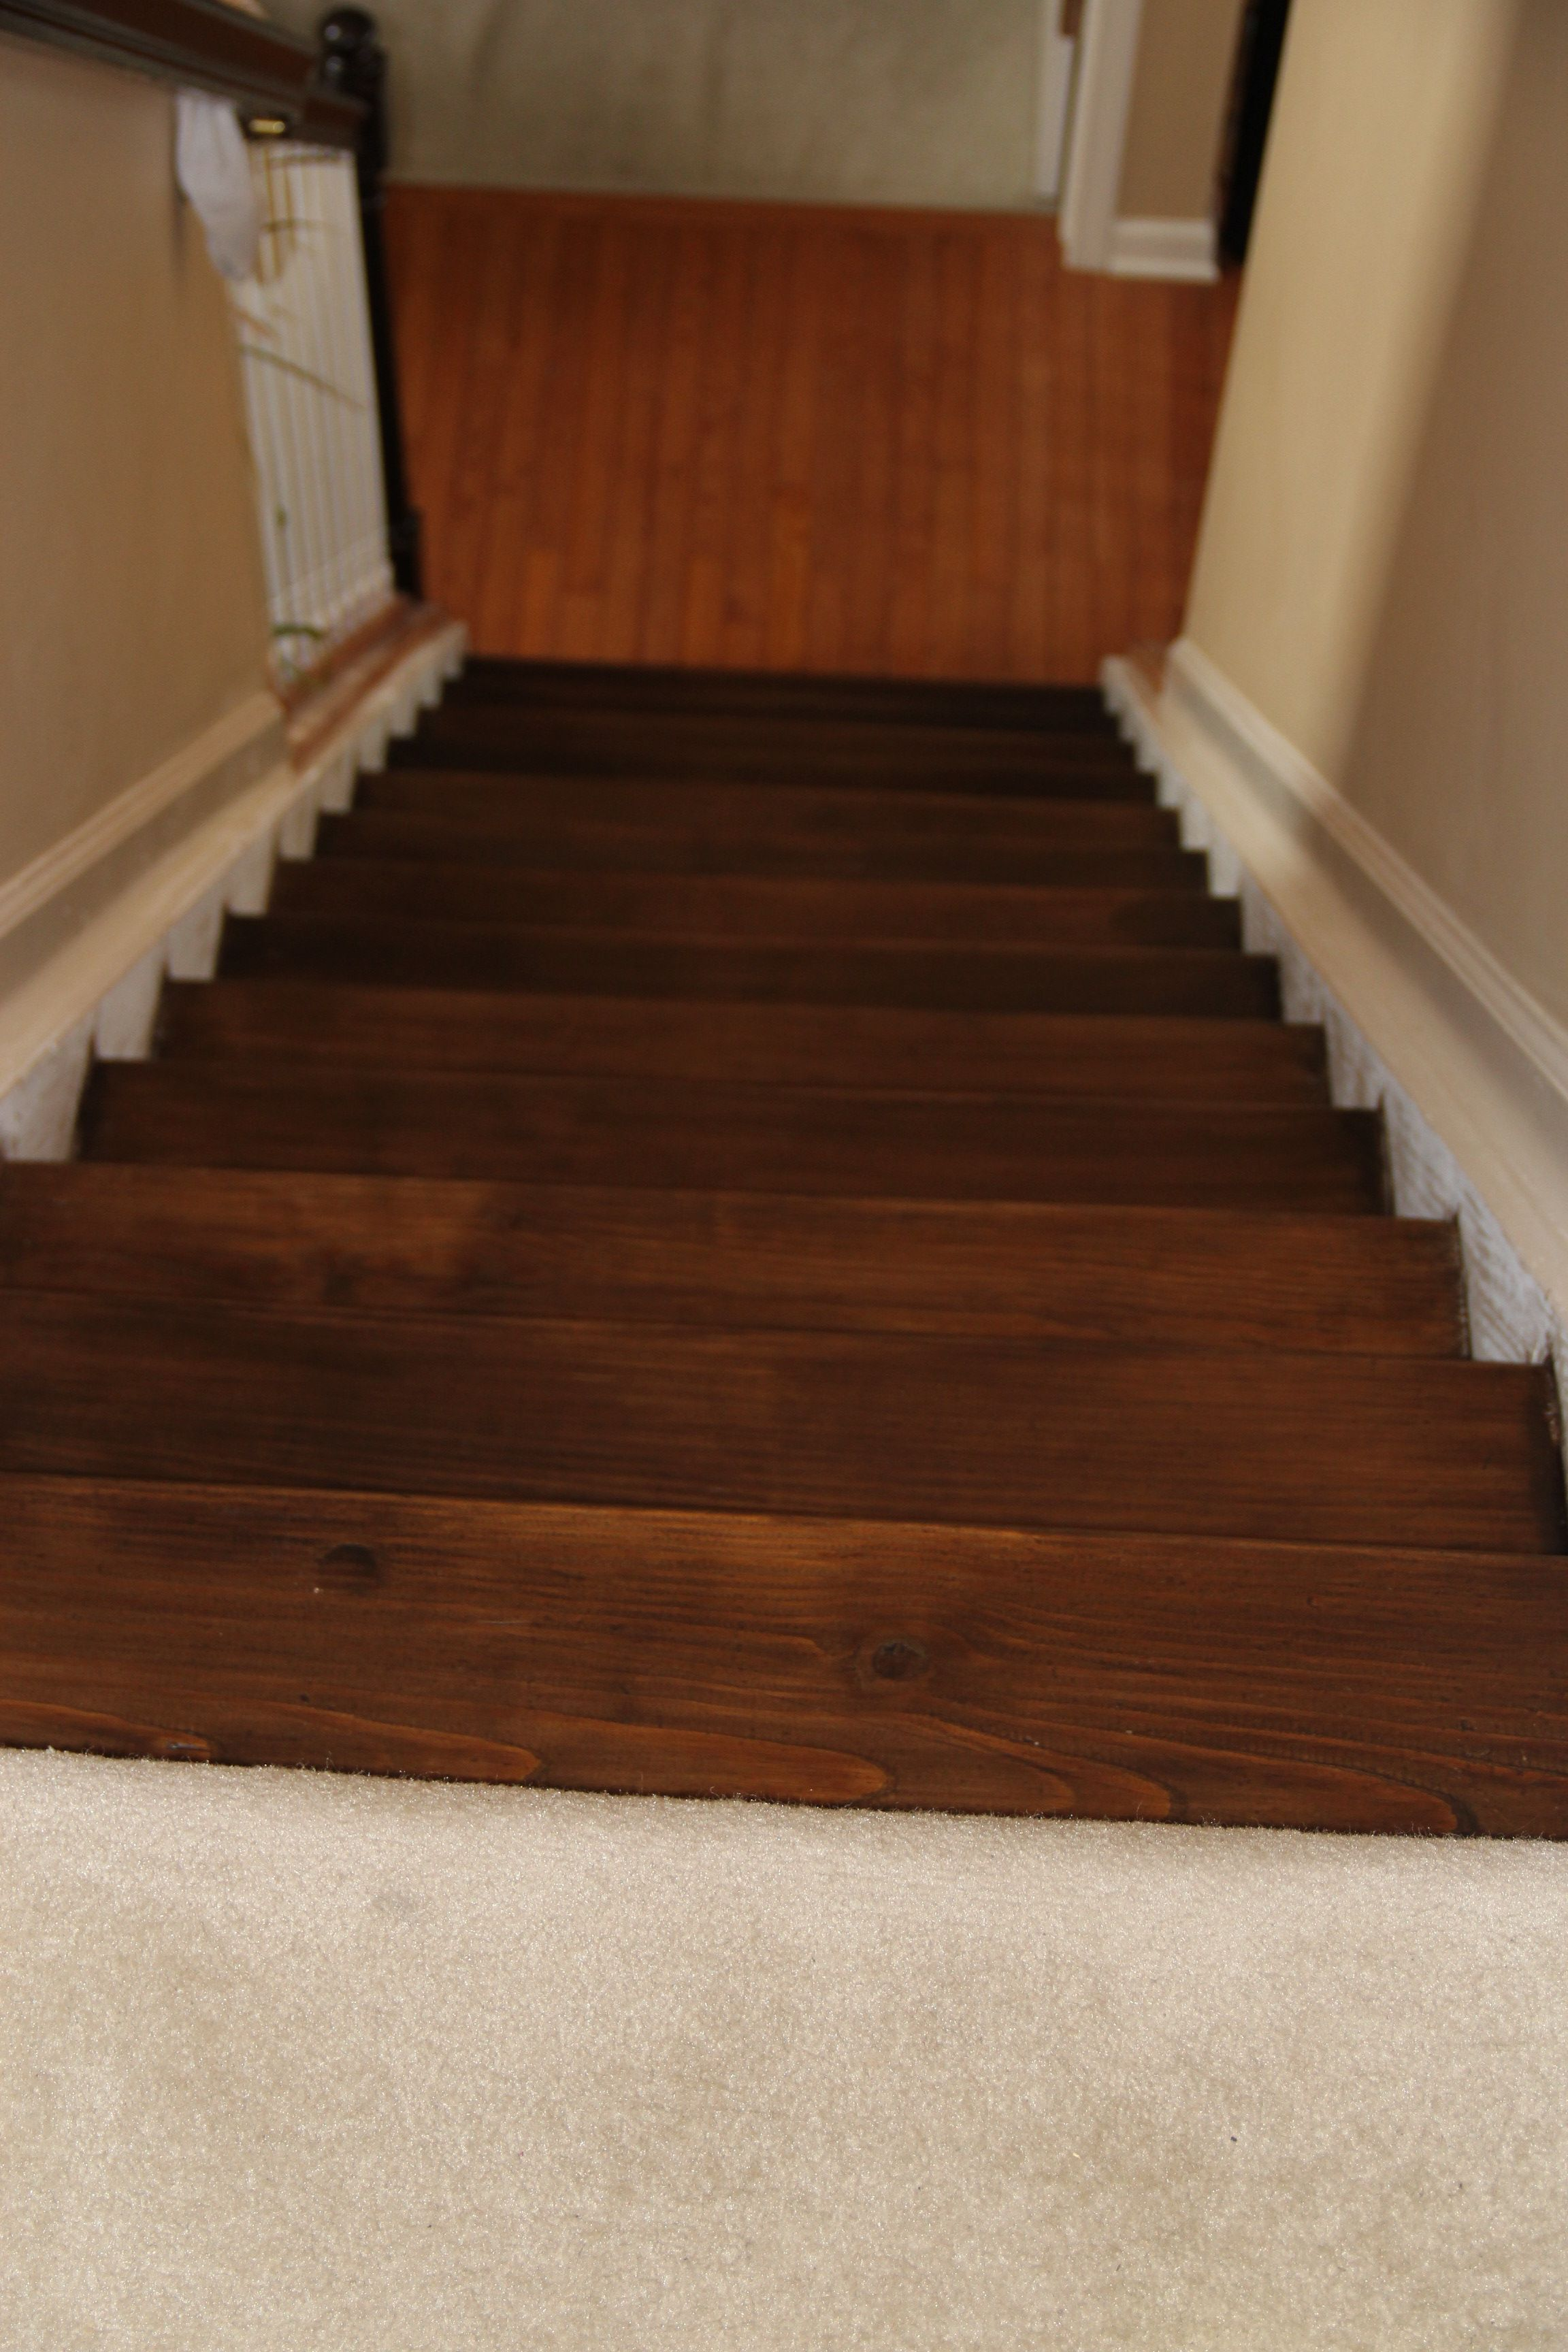 Staining Pine Stair Treads Tempting Thyme Pine Stair Treads   Red Oak Stair Treads Home Depot   Wood Stair Nose   White Oak   Unfinished Pine   Engineered Wood   Stairtek